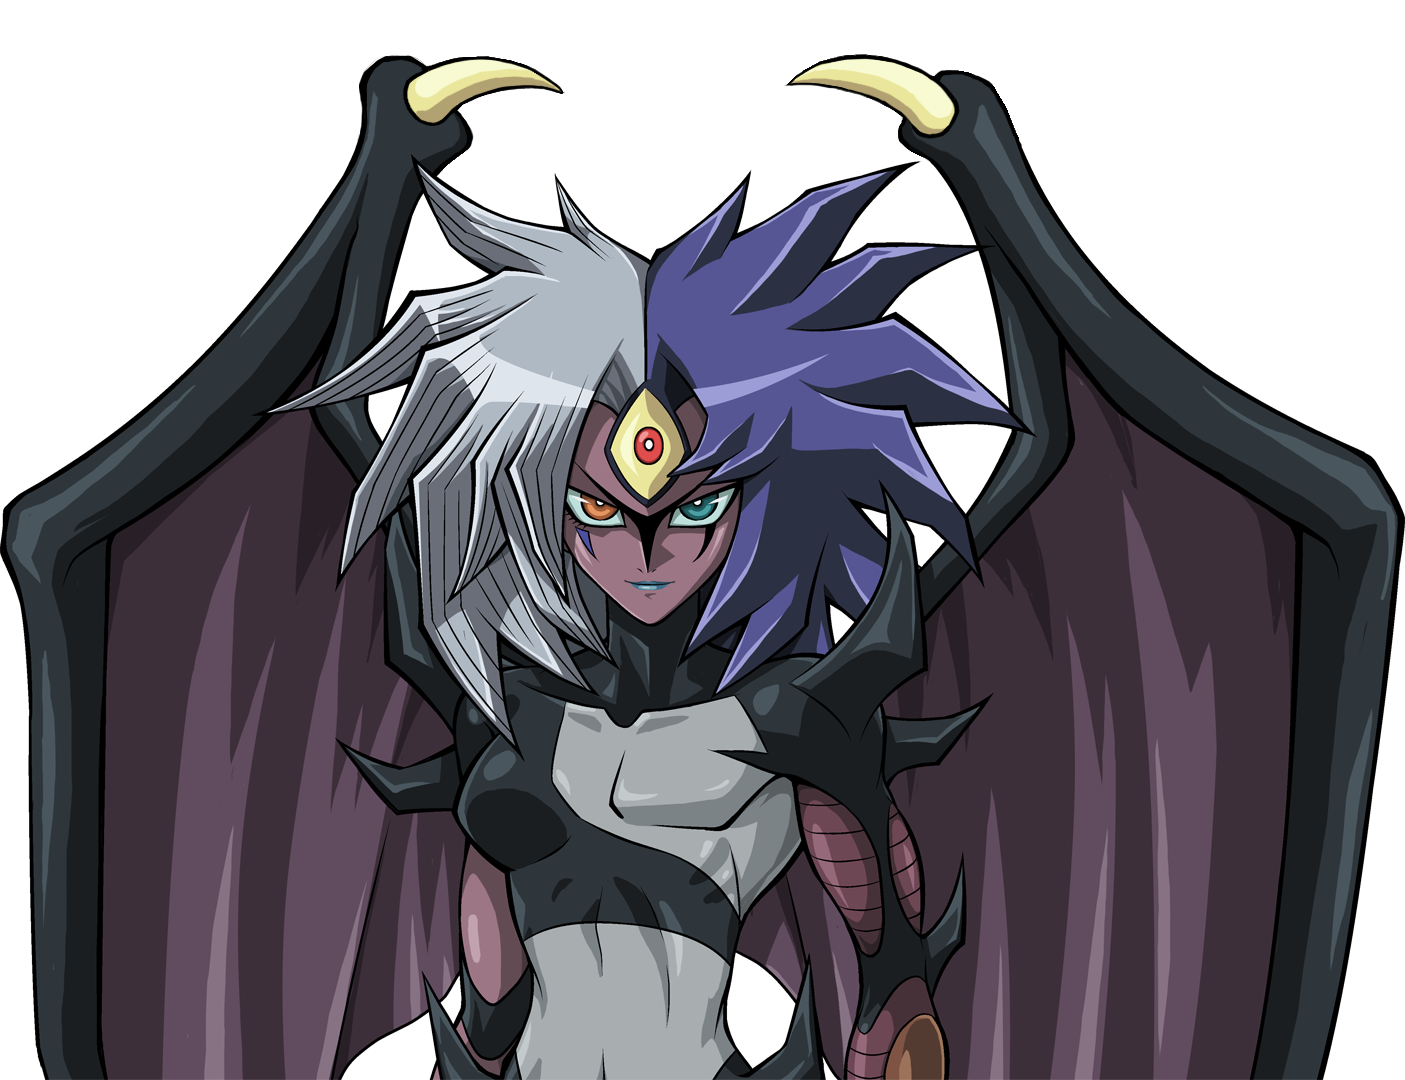 Yubel (Legacy of the Duelist)